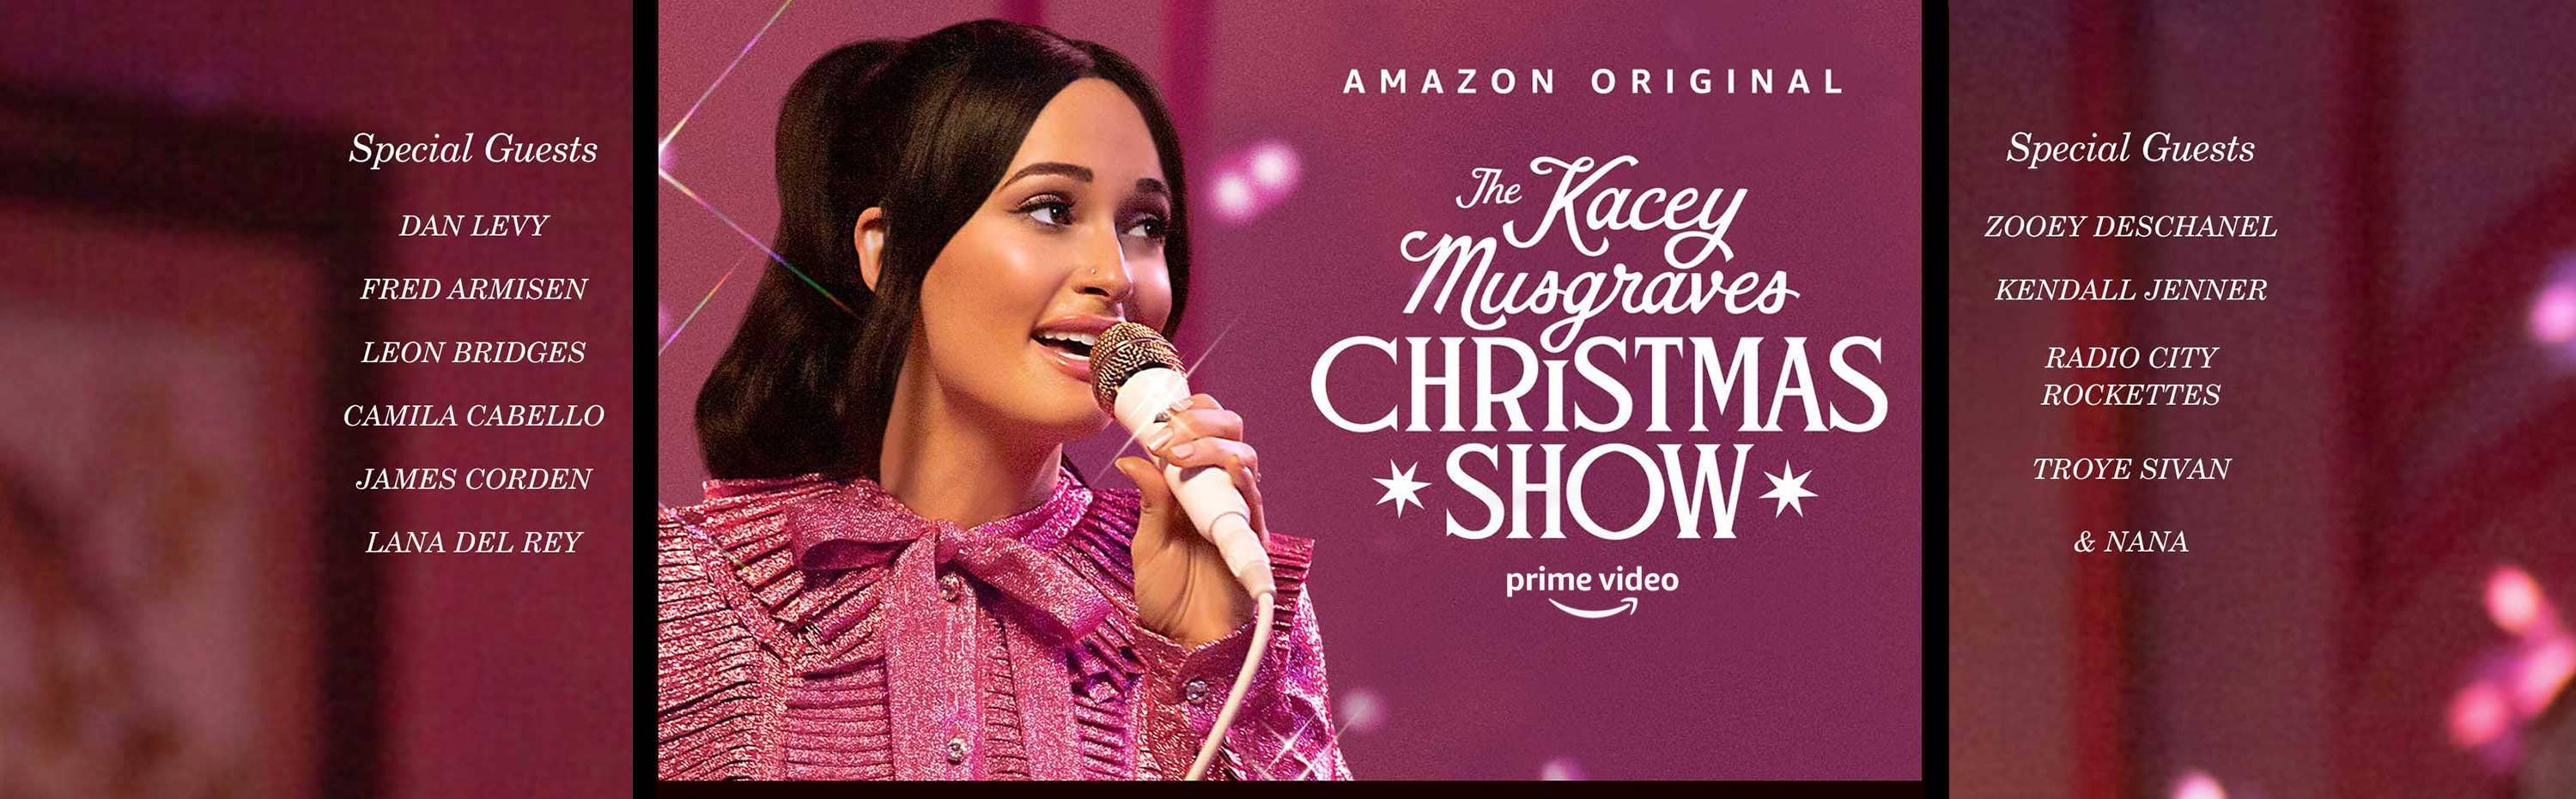 The Kacey Musgraves Christmas Show, a New Special coming to Amazon Prime Video on November 29, 2019